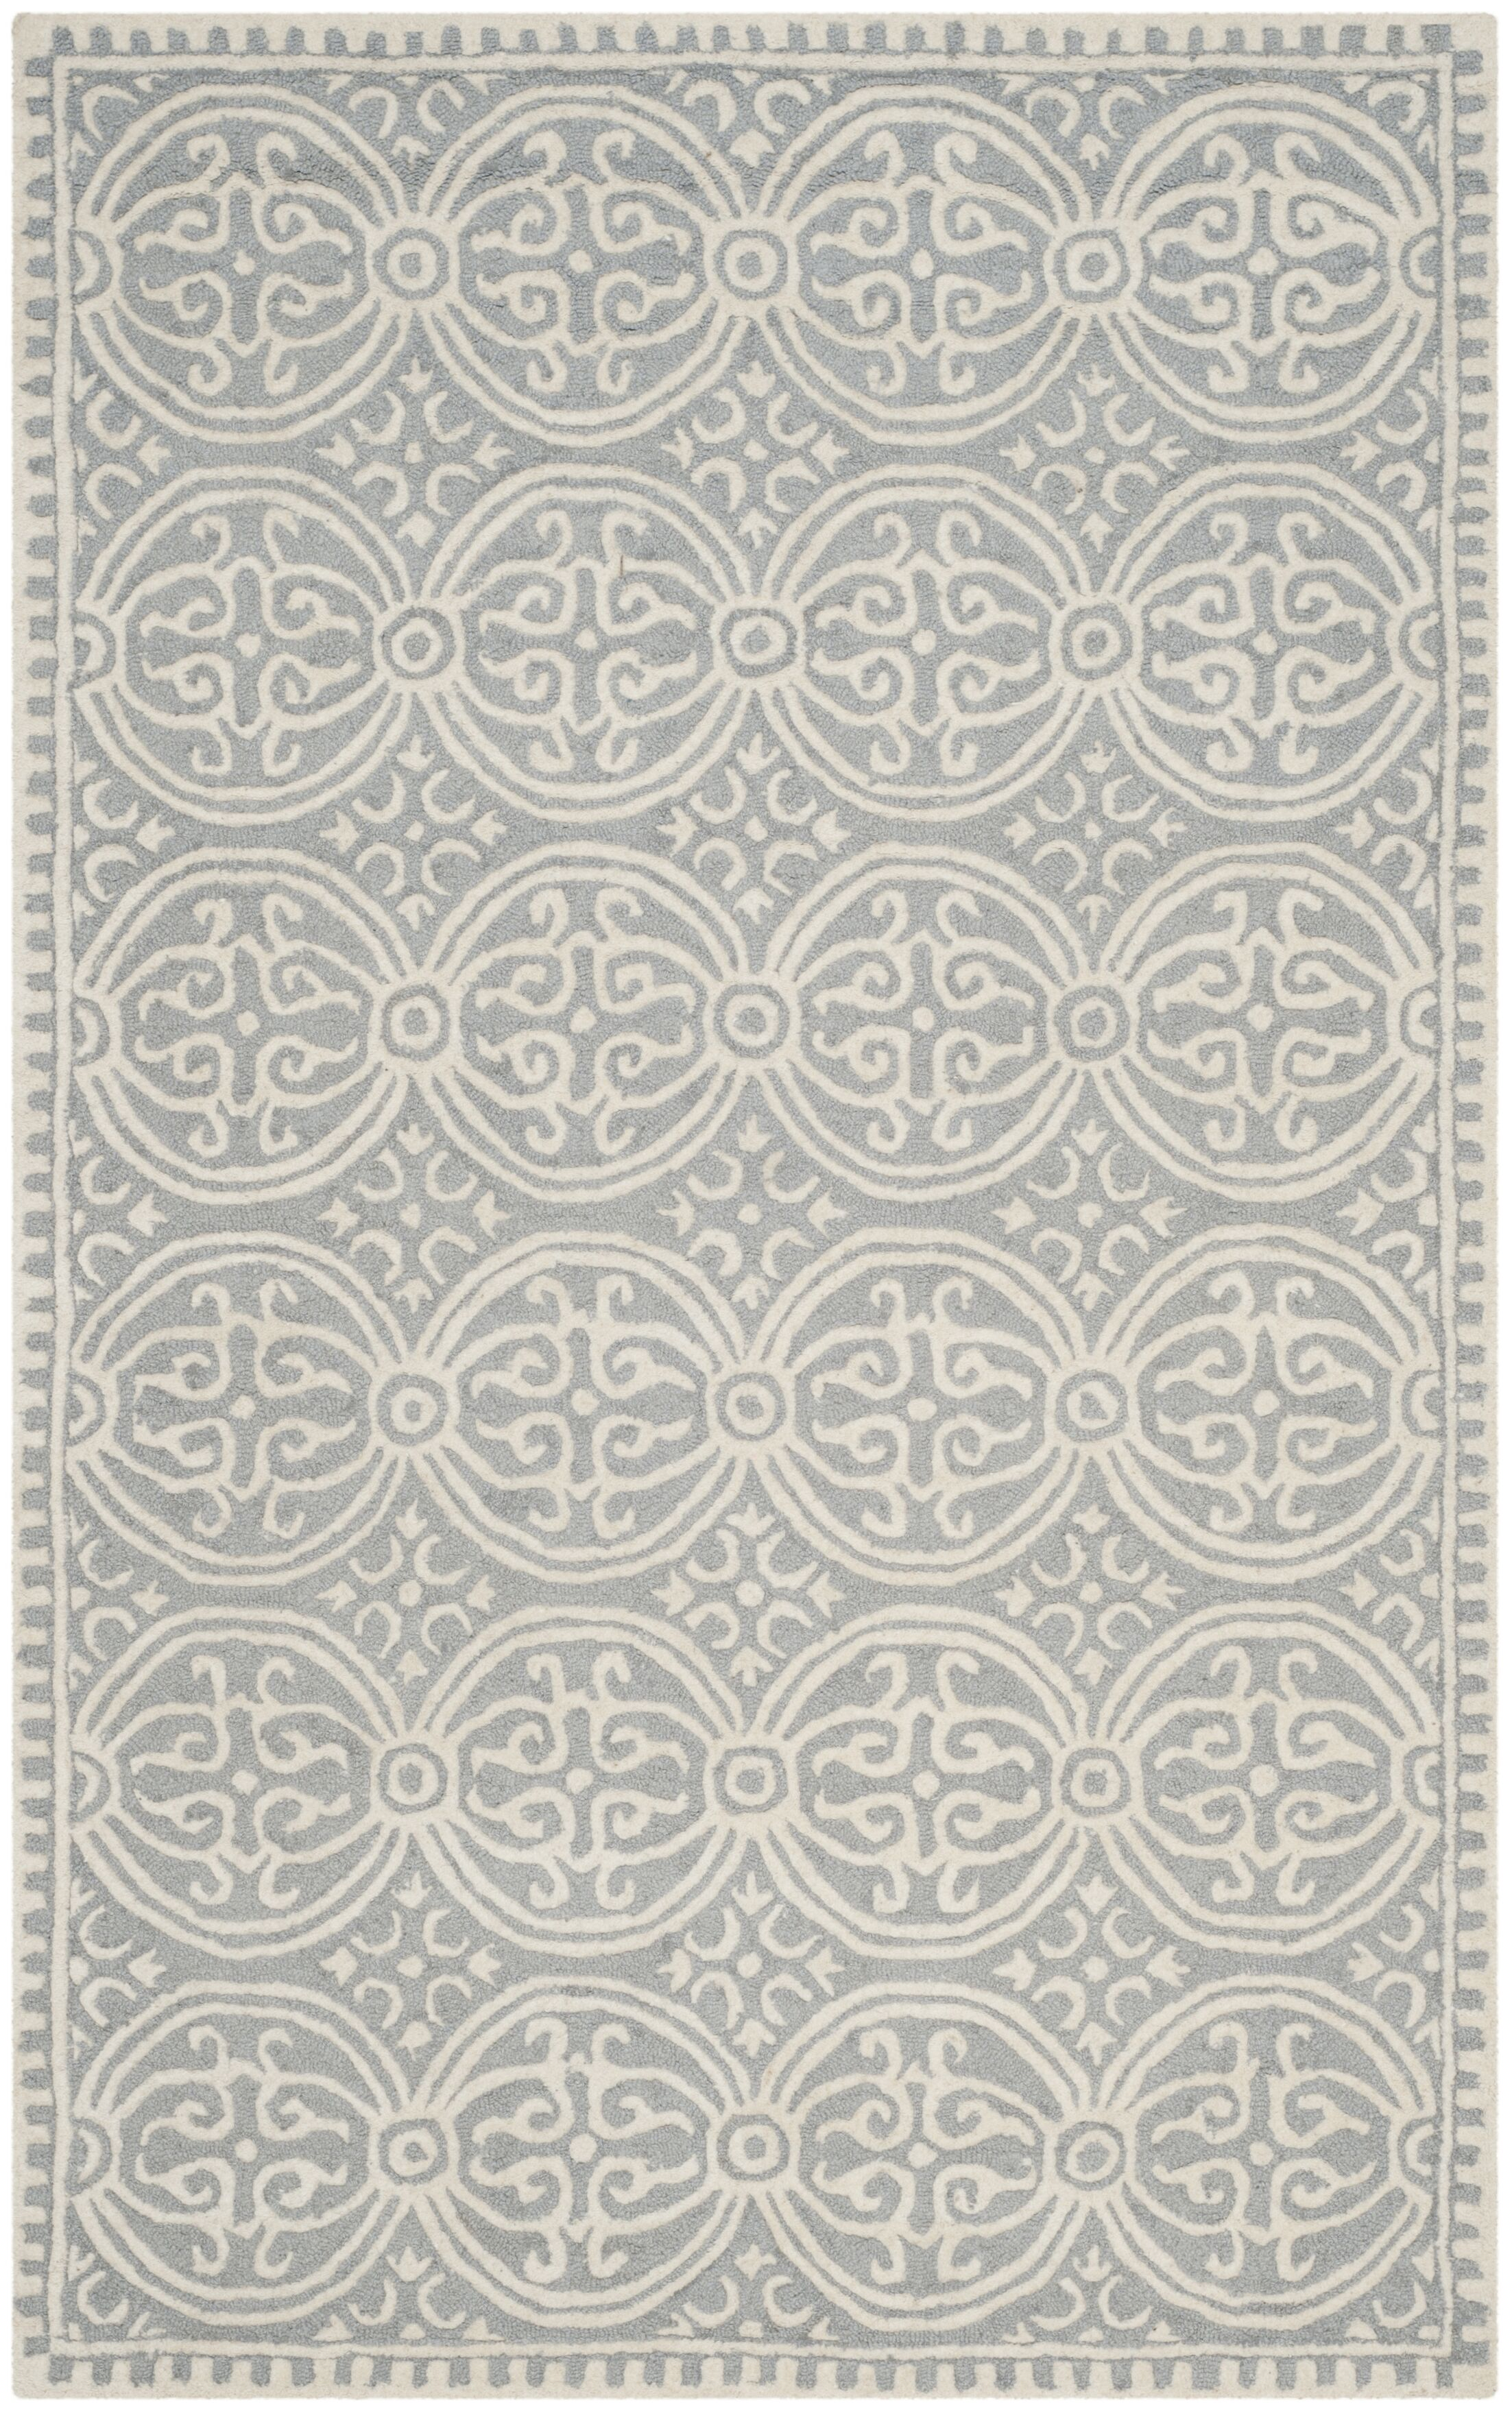 Landen Hand-Tufted Silver/Ivory Area Rug Rug Size: Rectangle 11' x 15'